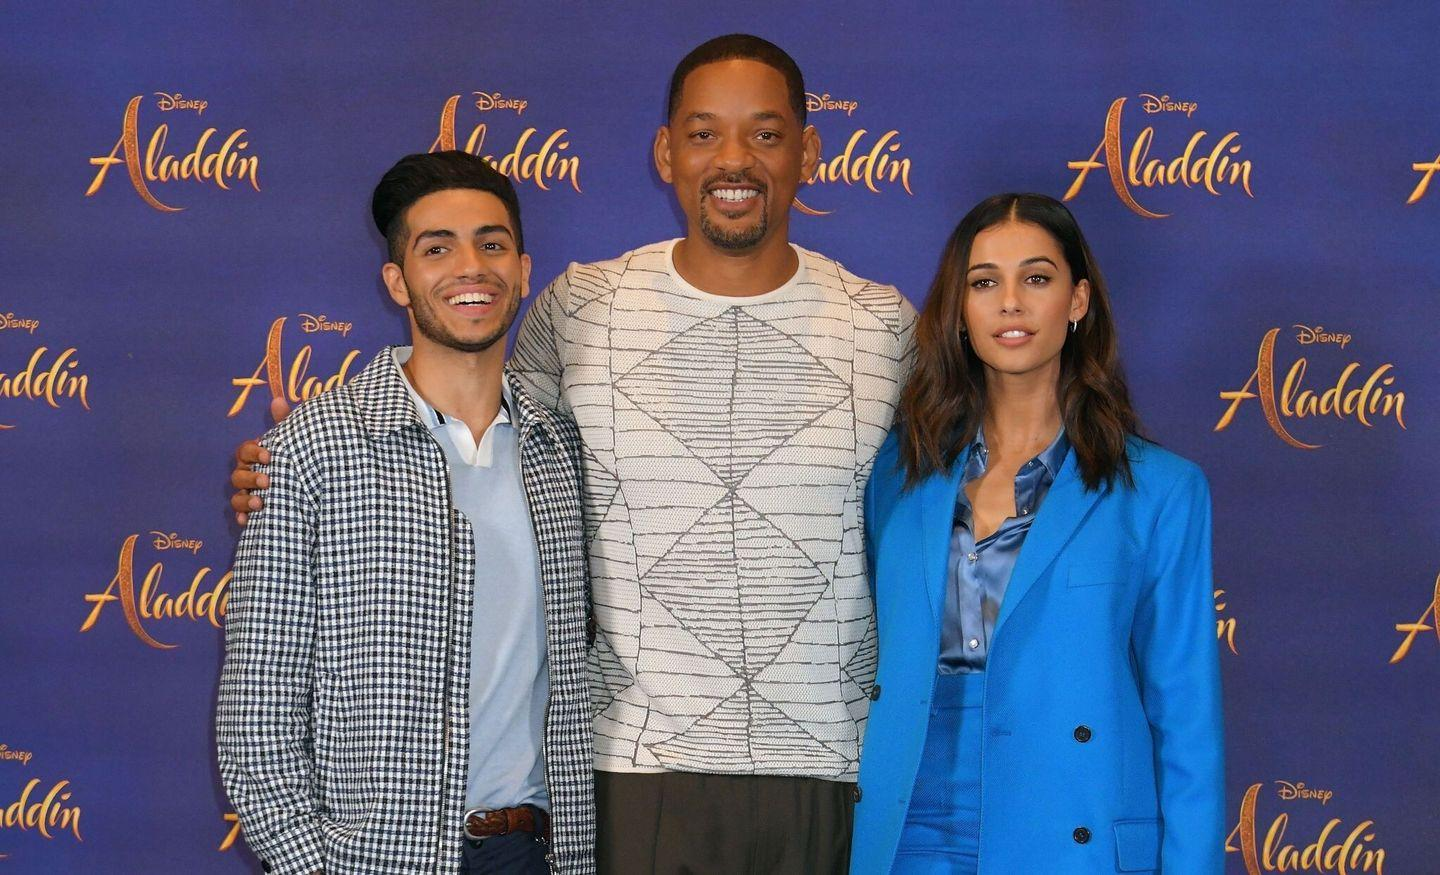 Naomi Scott from Aladdin Press conference in London